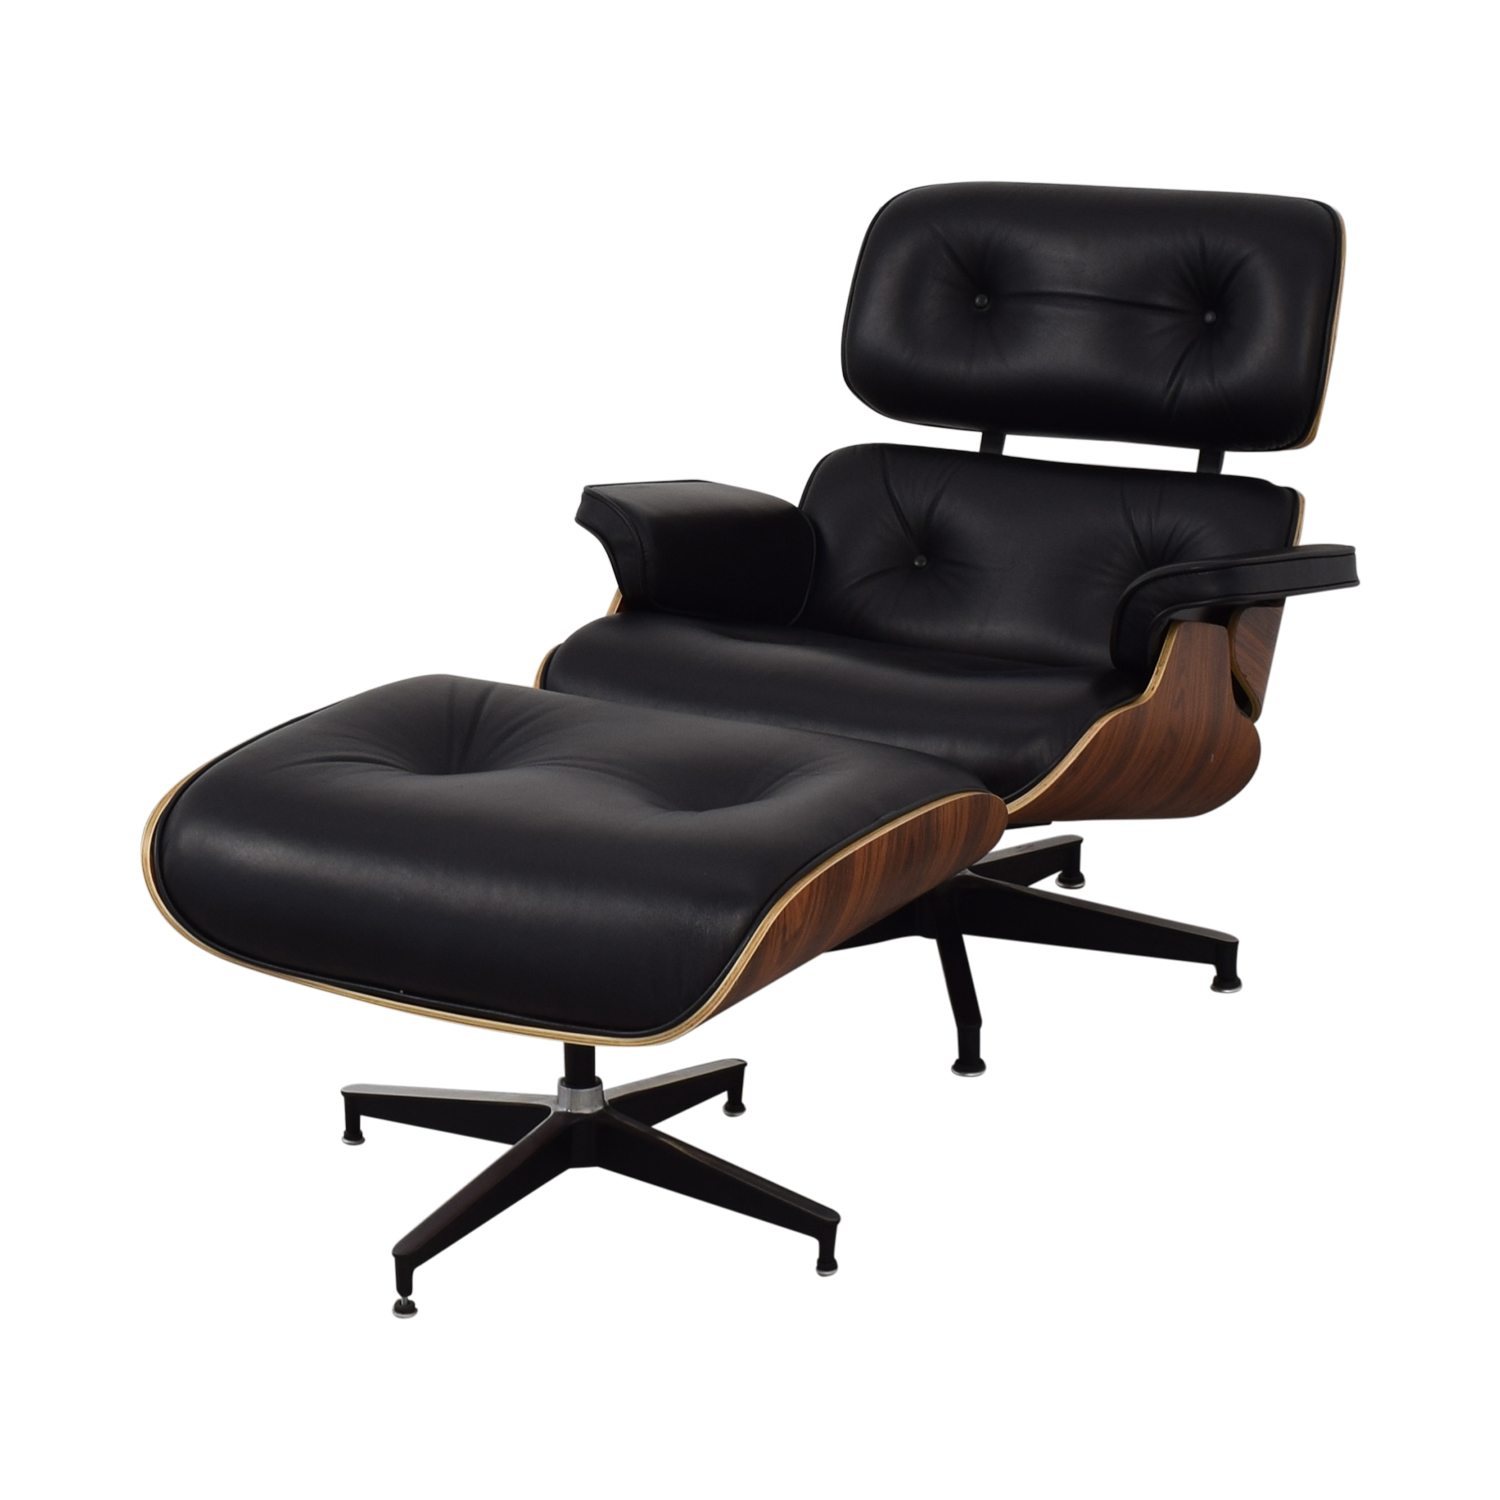 Design Eames Style Home 65Off Manhattan y7vYgf6b